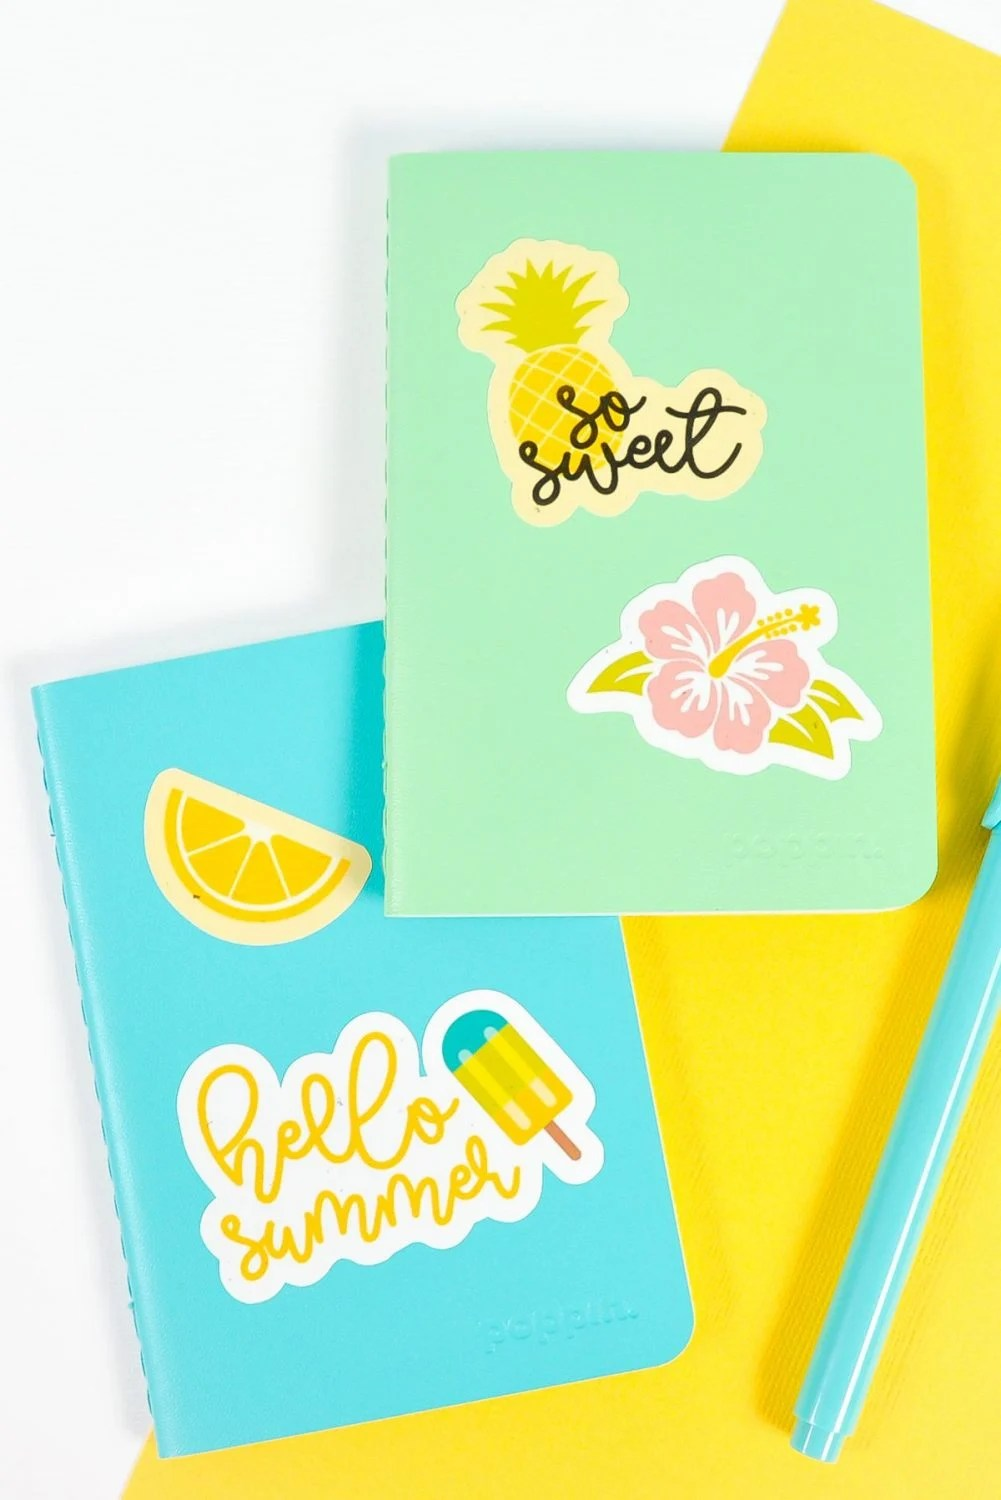 Blue and green notebooks with Cricut summer stickers on white and yellow background